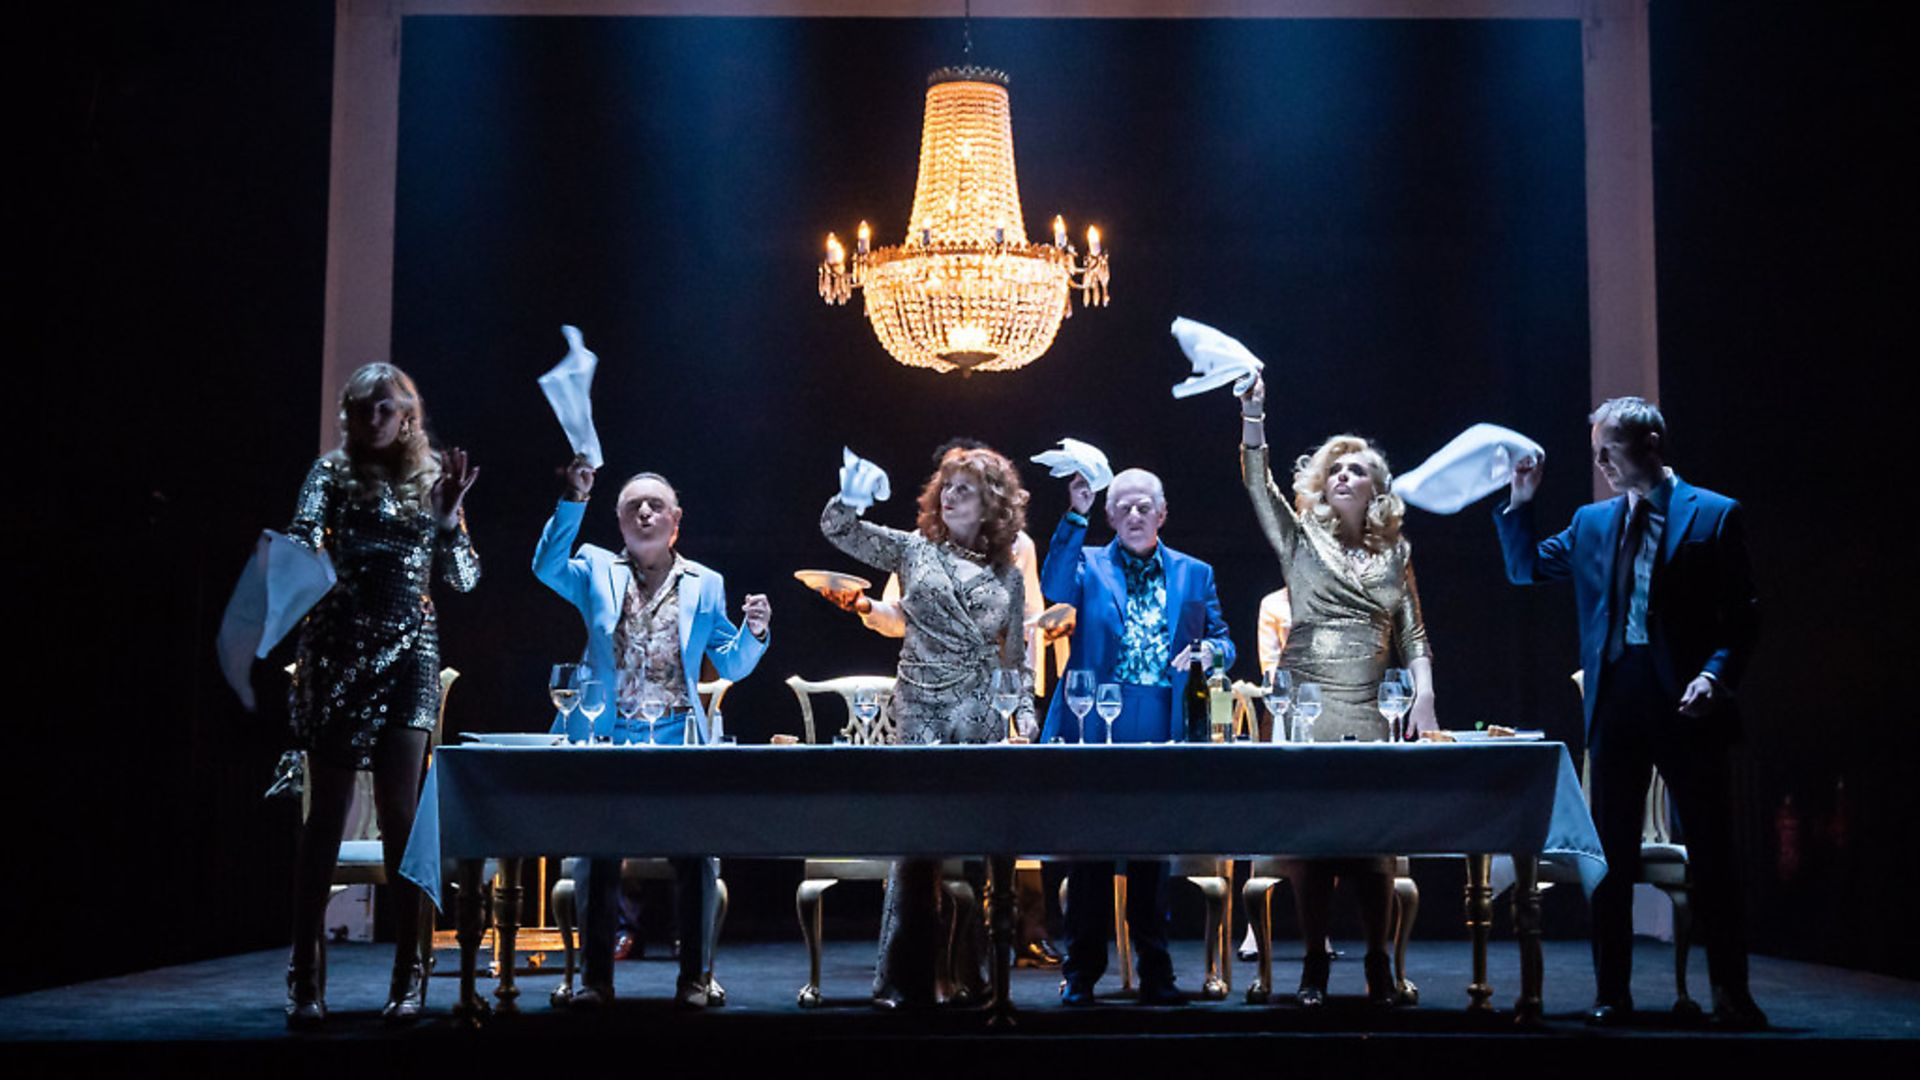 The ensemble in Celebration. Photo: Marc Brenner. - Credit: Archant